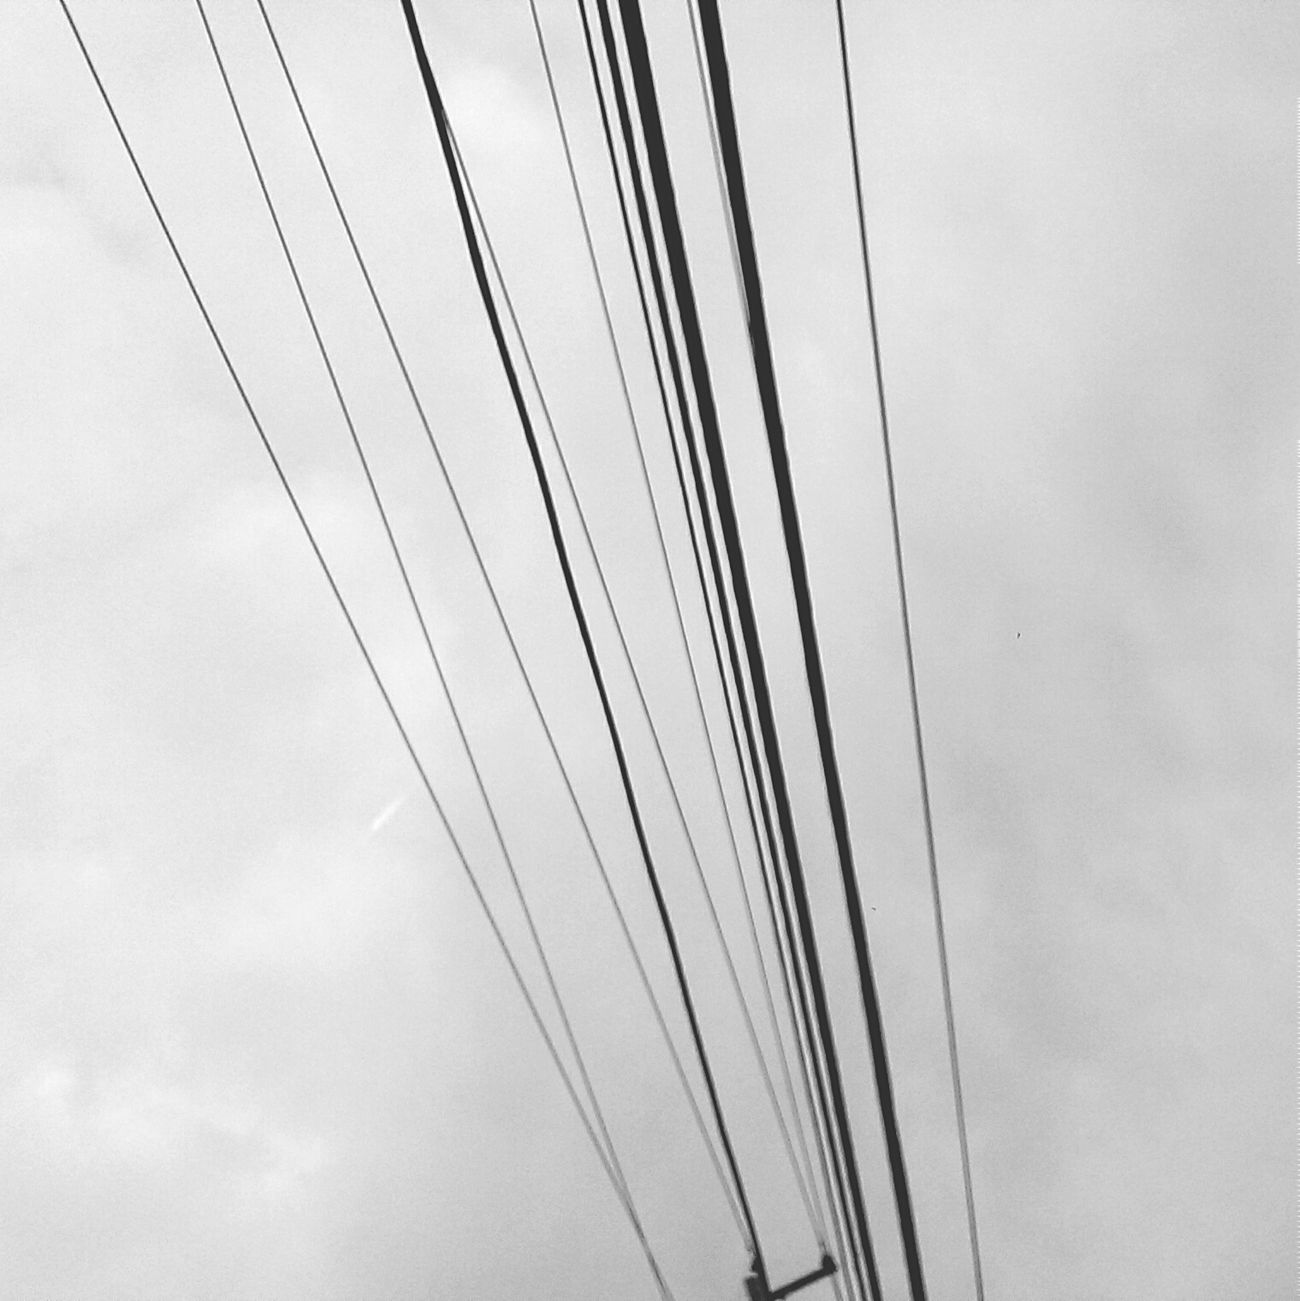 Wires In The Sky Black & White Notsofun